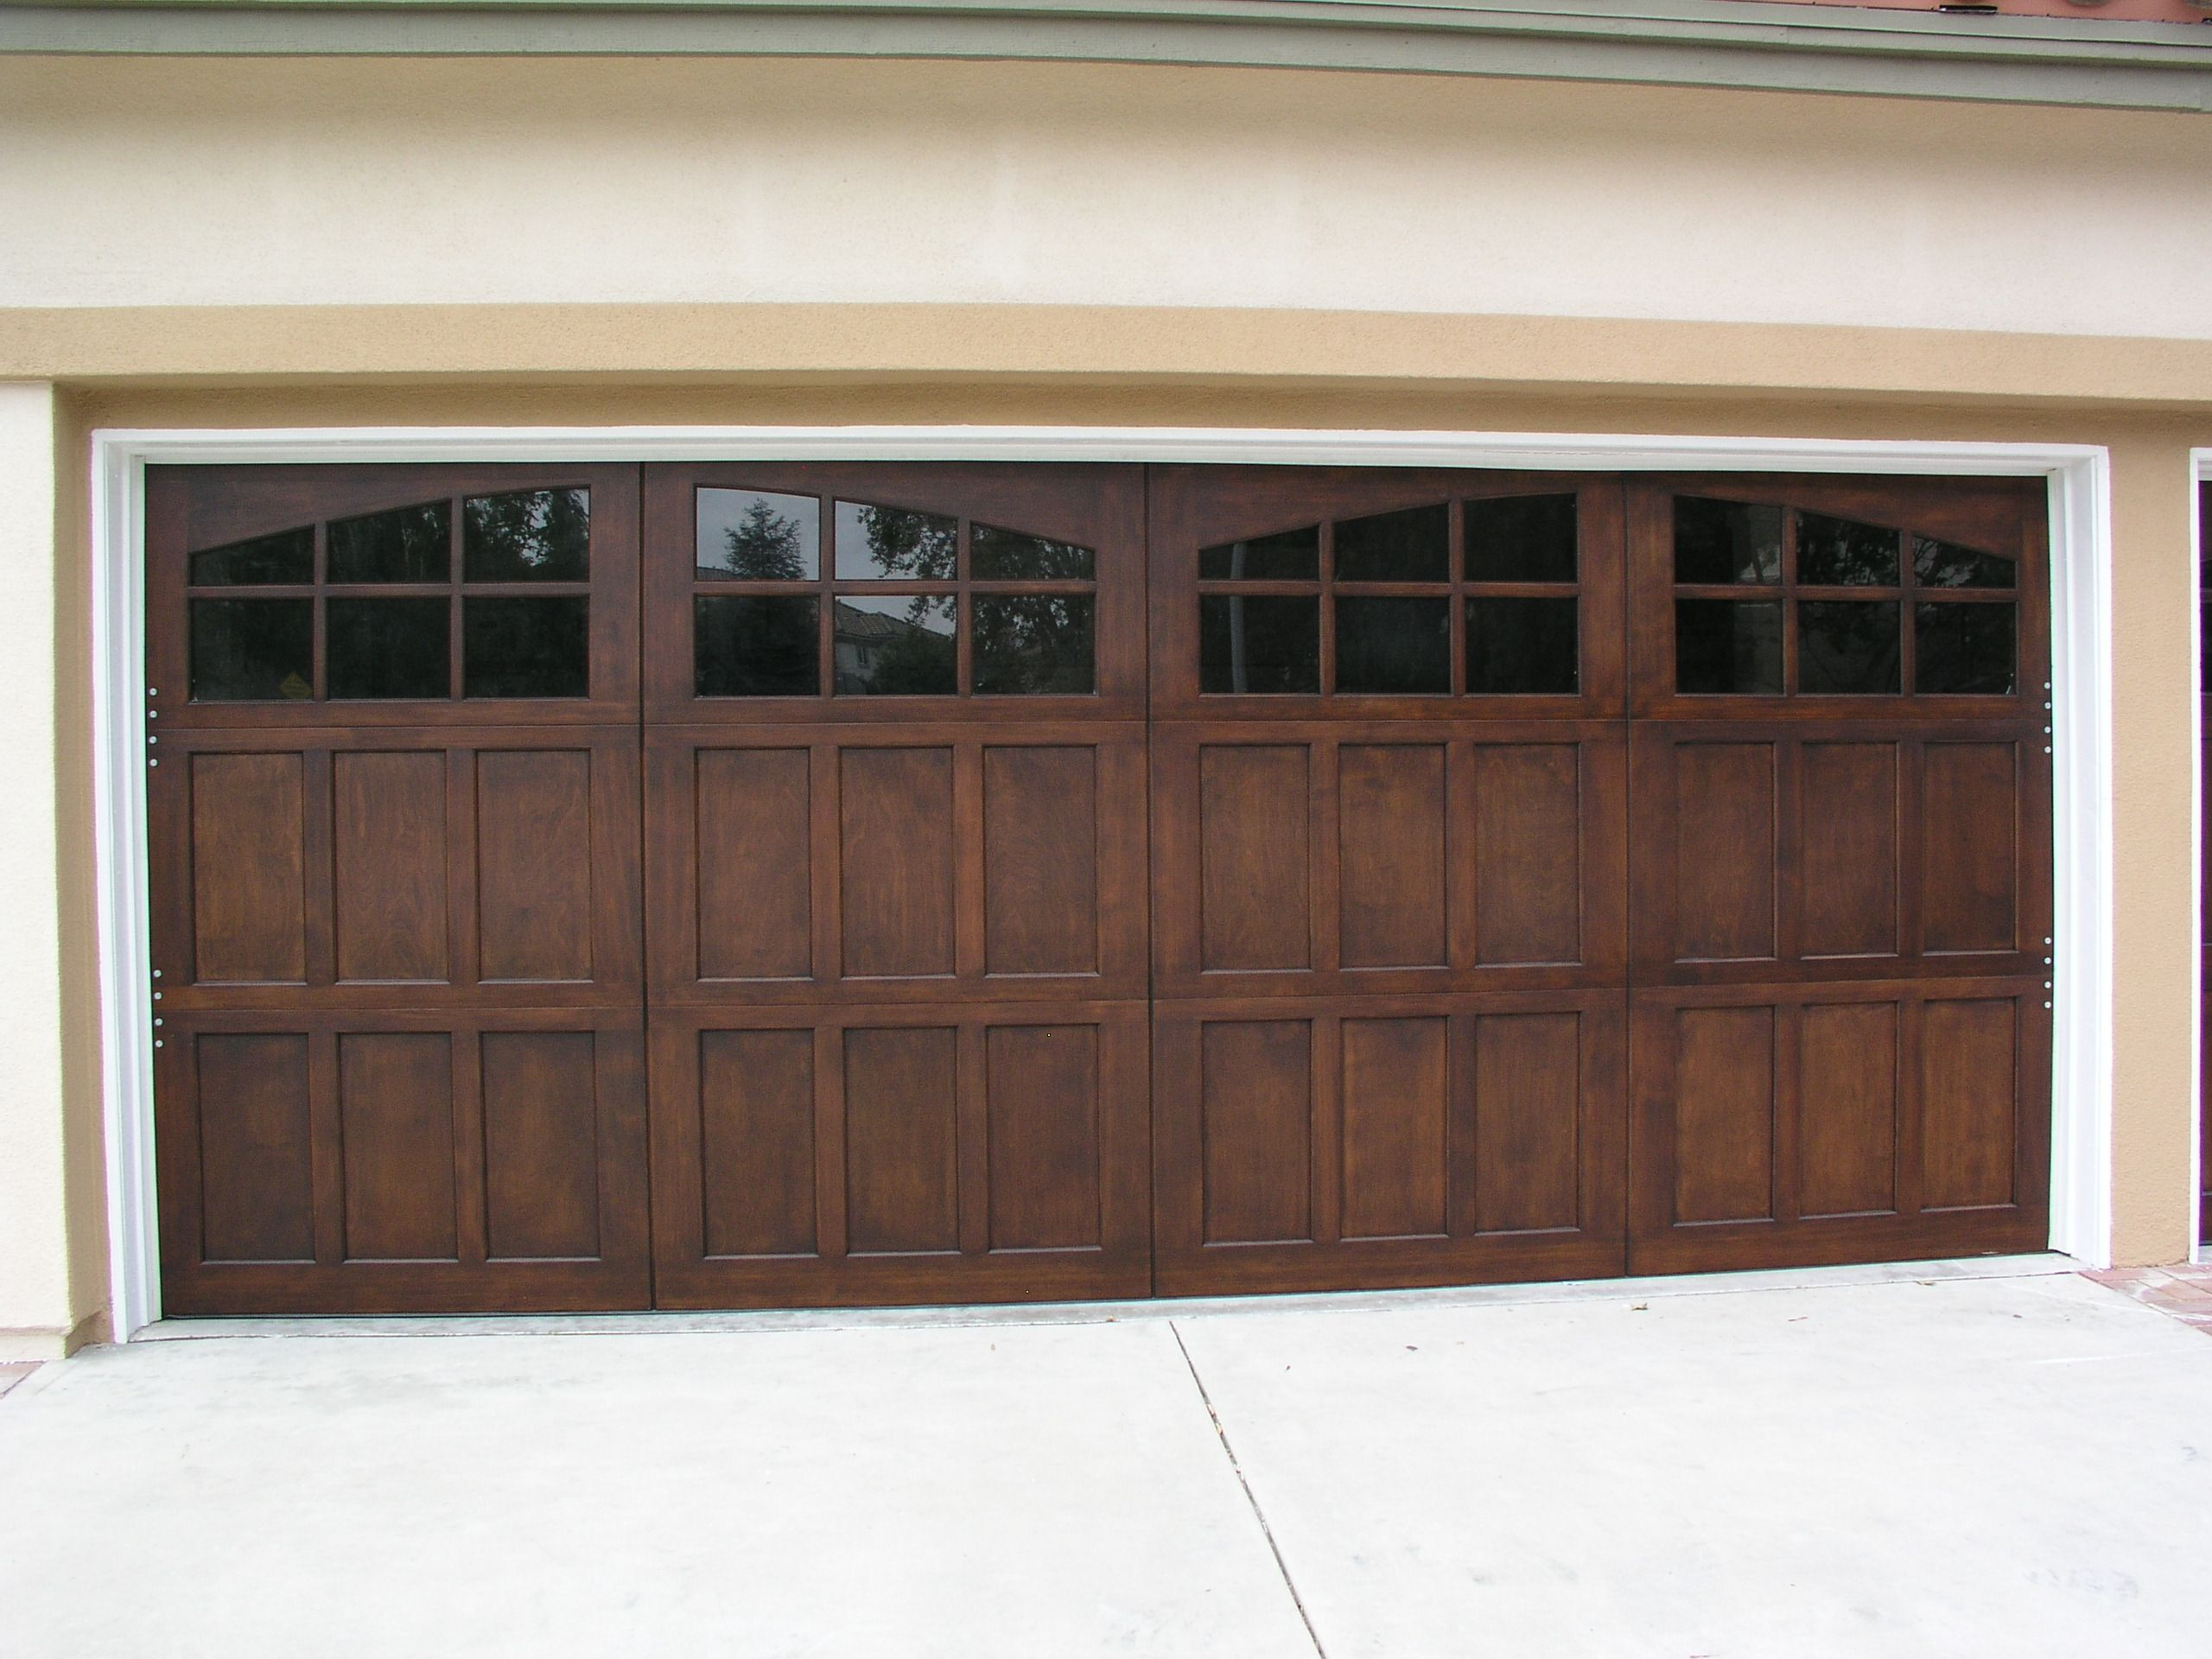 Beautiful wayne dalton 9700 walnut garage door los angeles ca photo credit